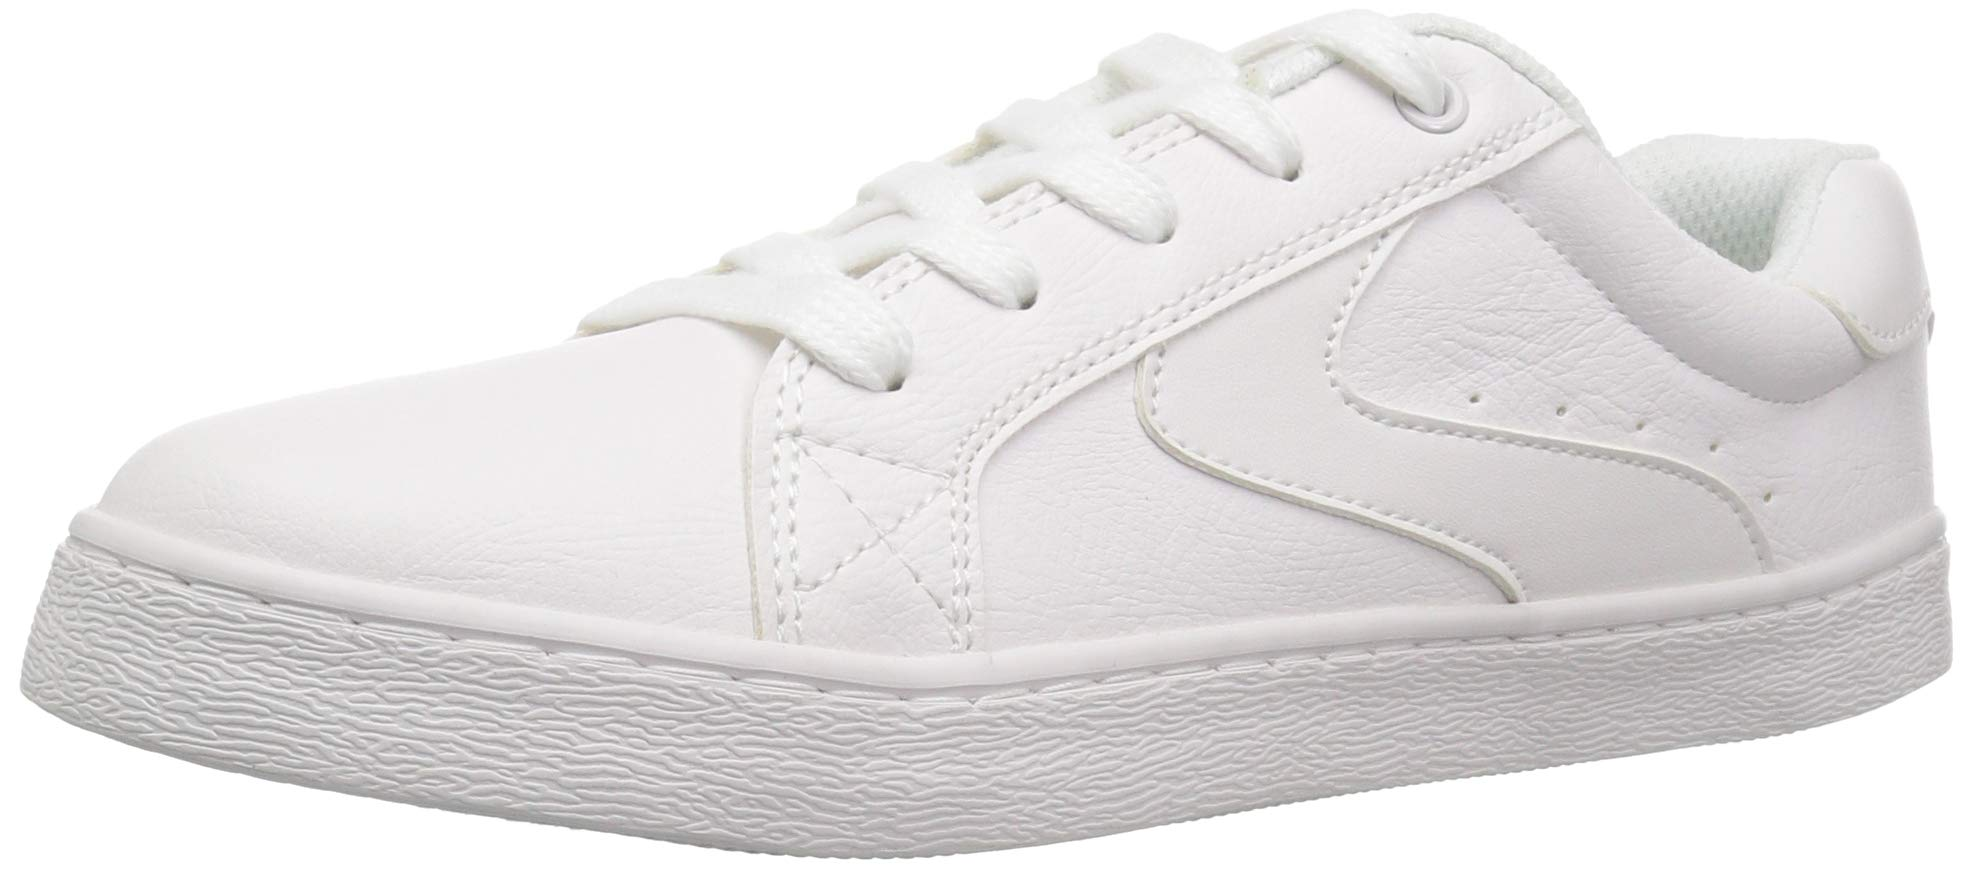 The Children's Place Boys' Low Top Sneaker, White, Youth 3 Child US Little Kid